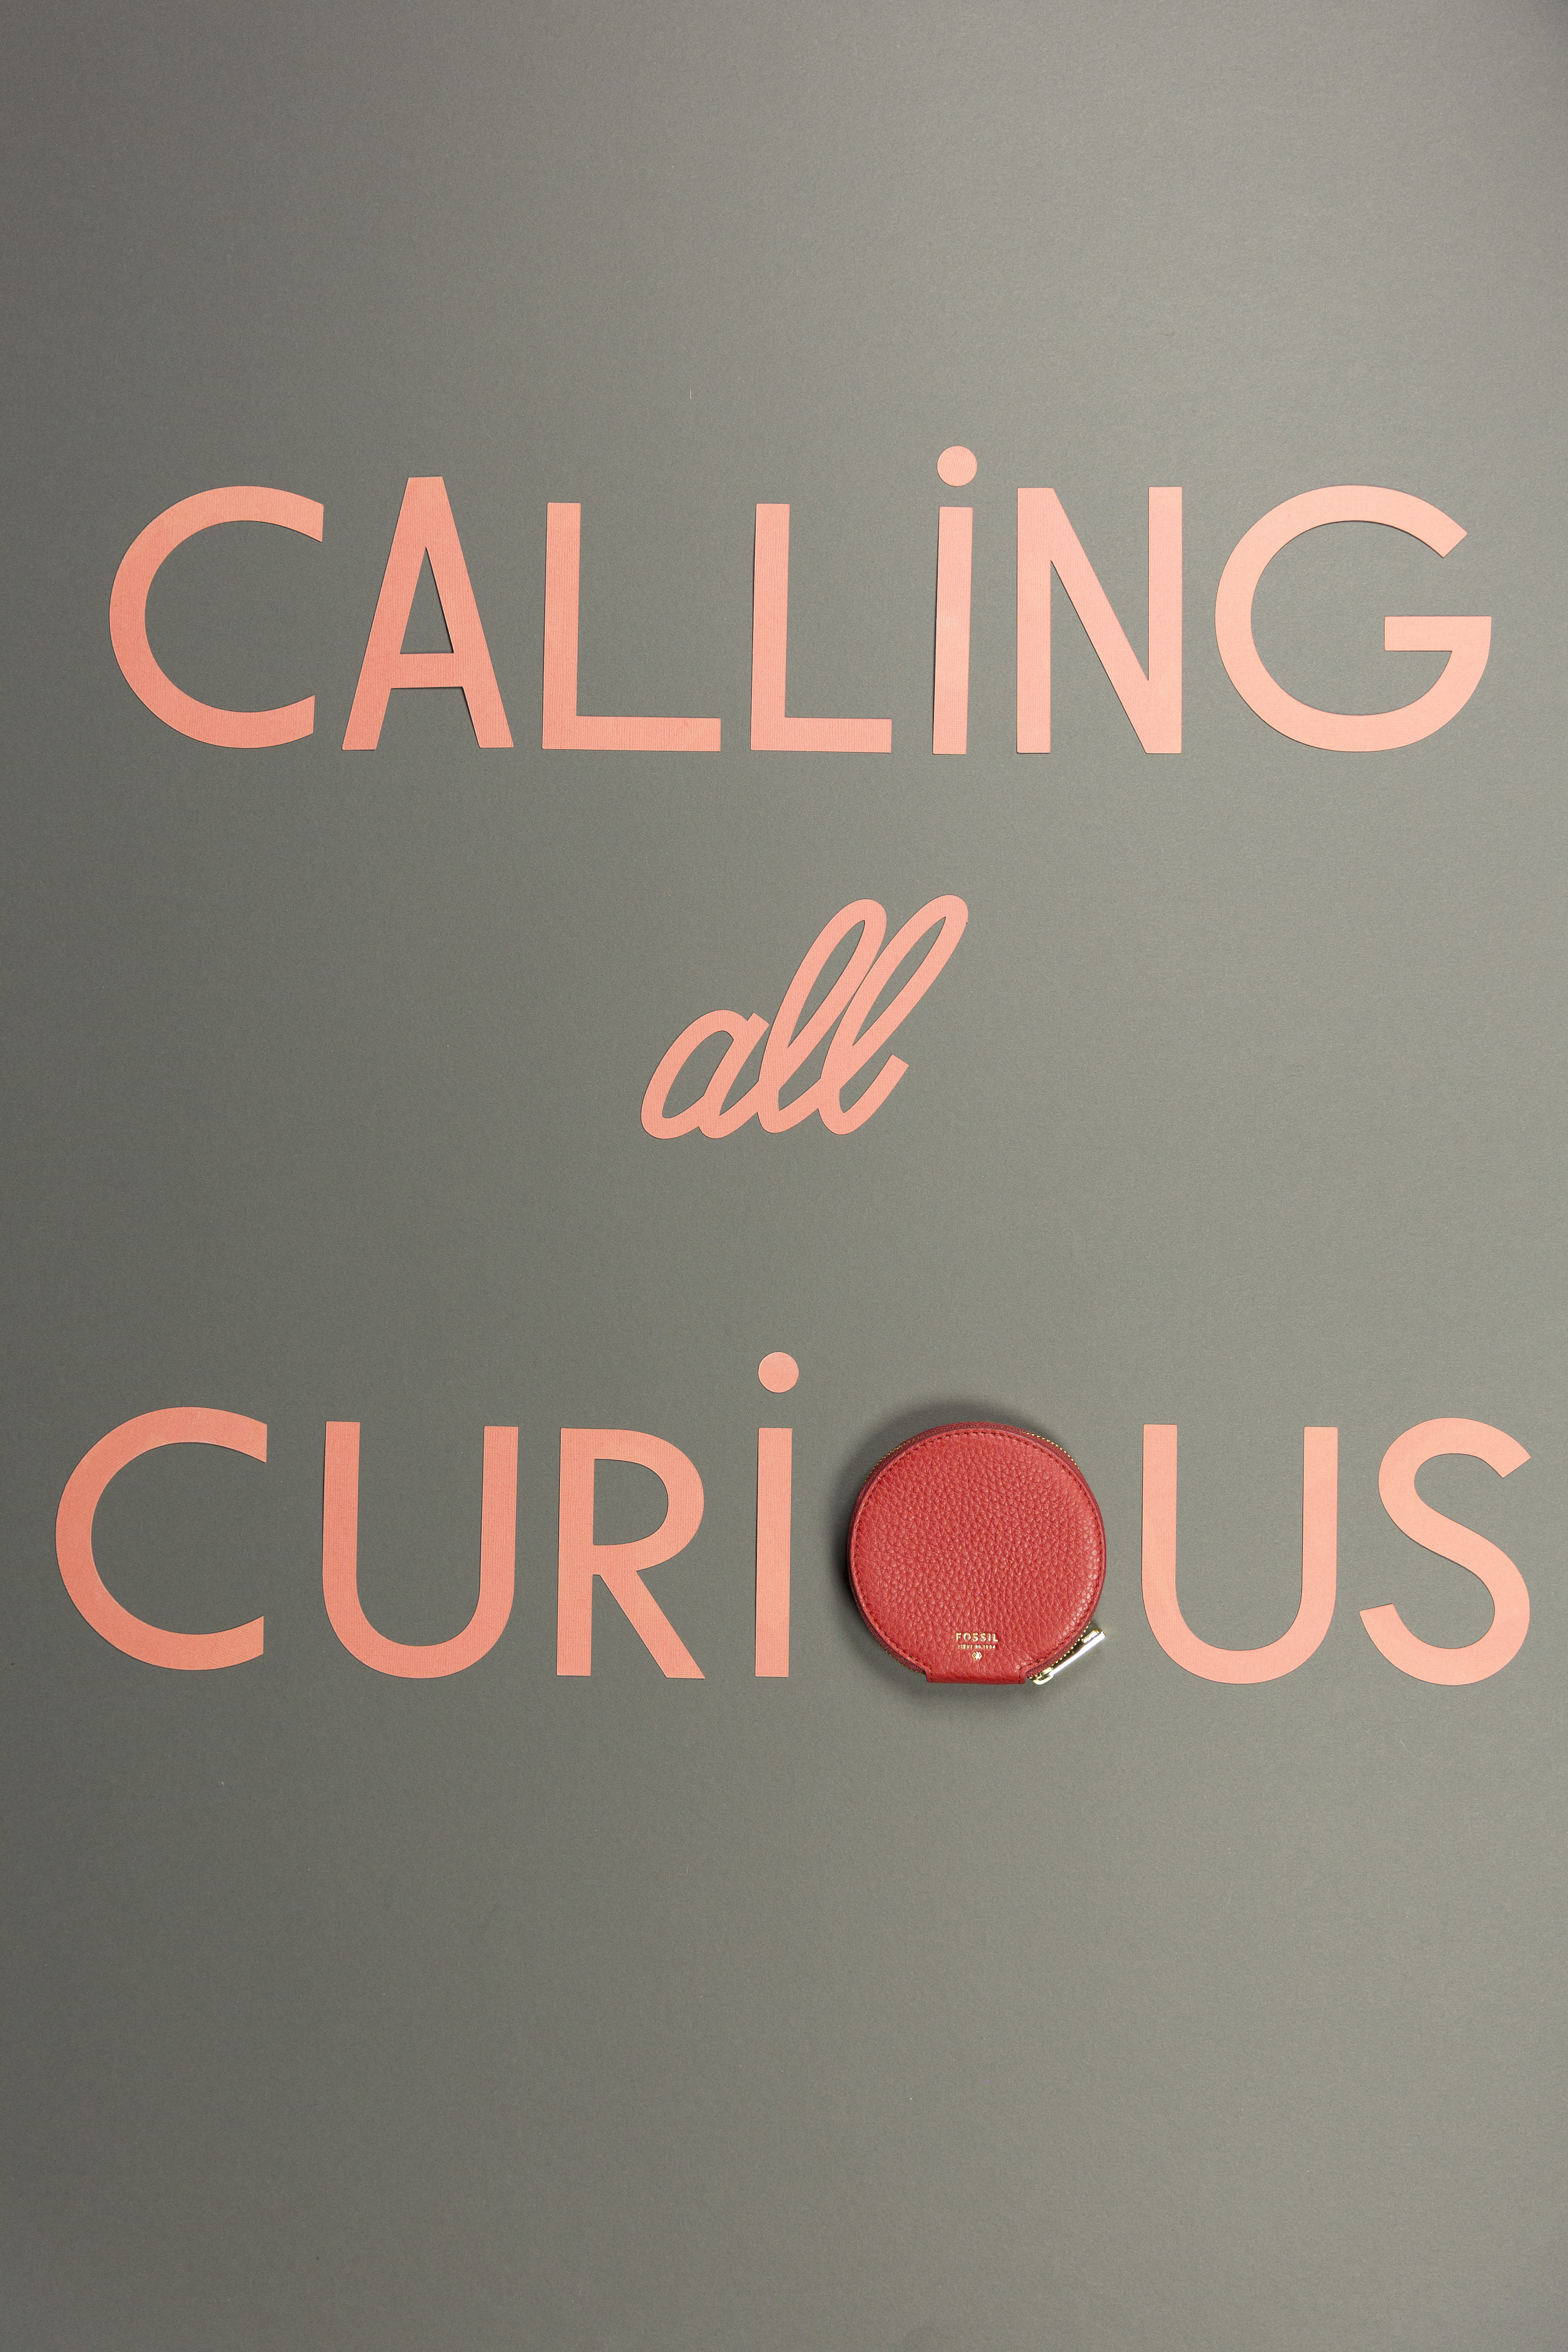 Calling All Curious.